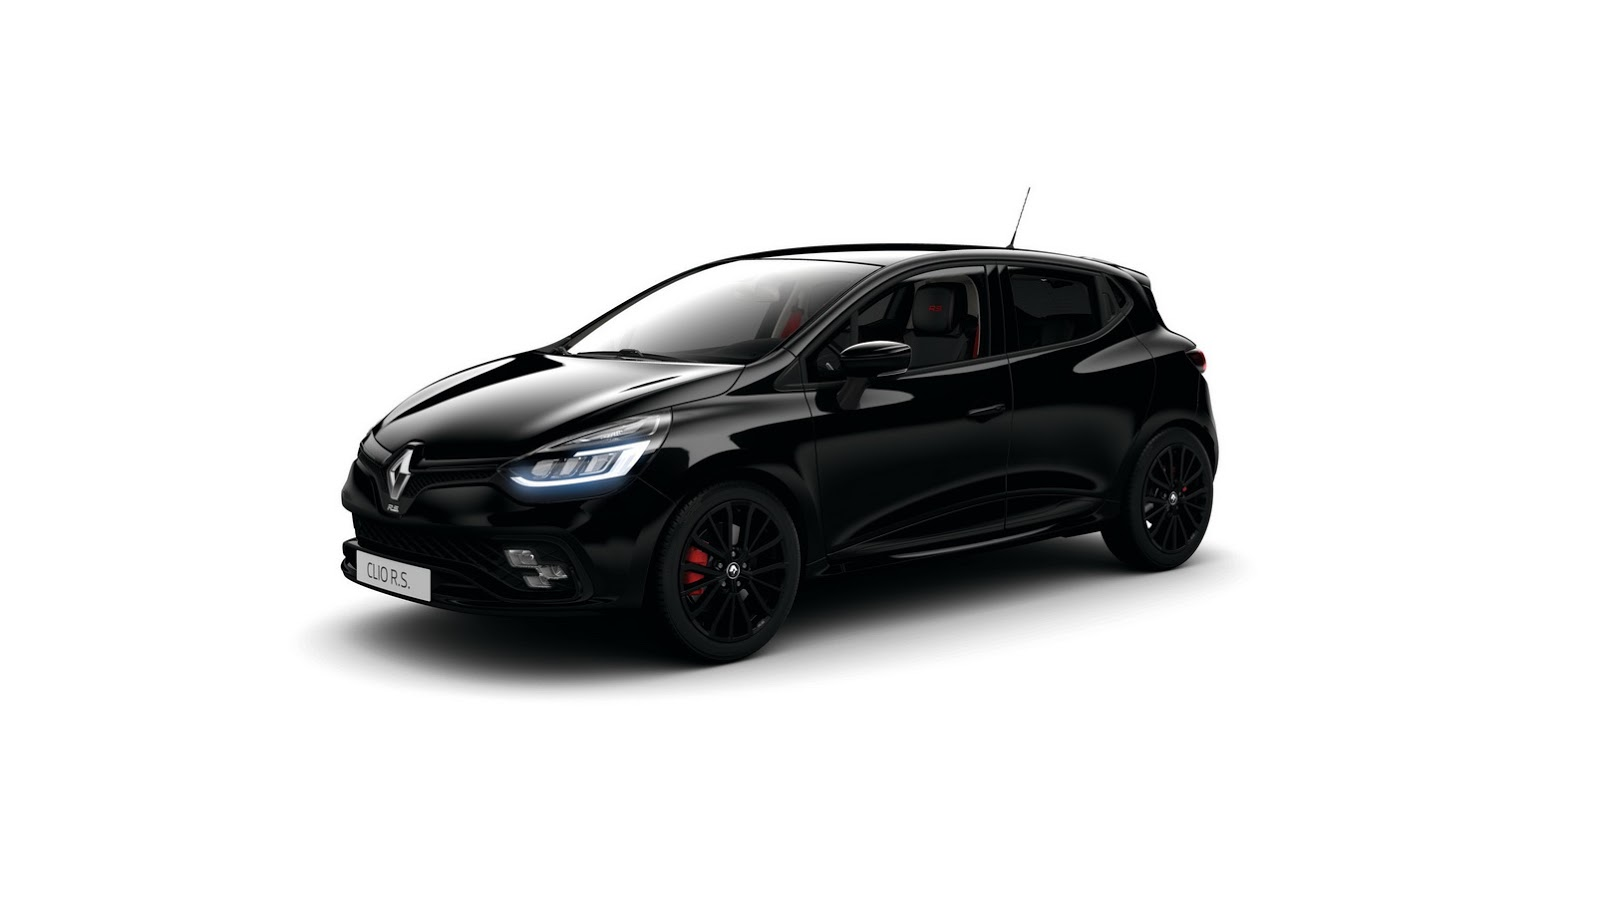 renault clio rs gets black edition pack looks like mini darth vader autoevolution. Black Bedroom Furniture Sets. Home Design Ideas